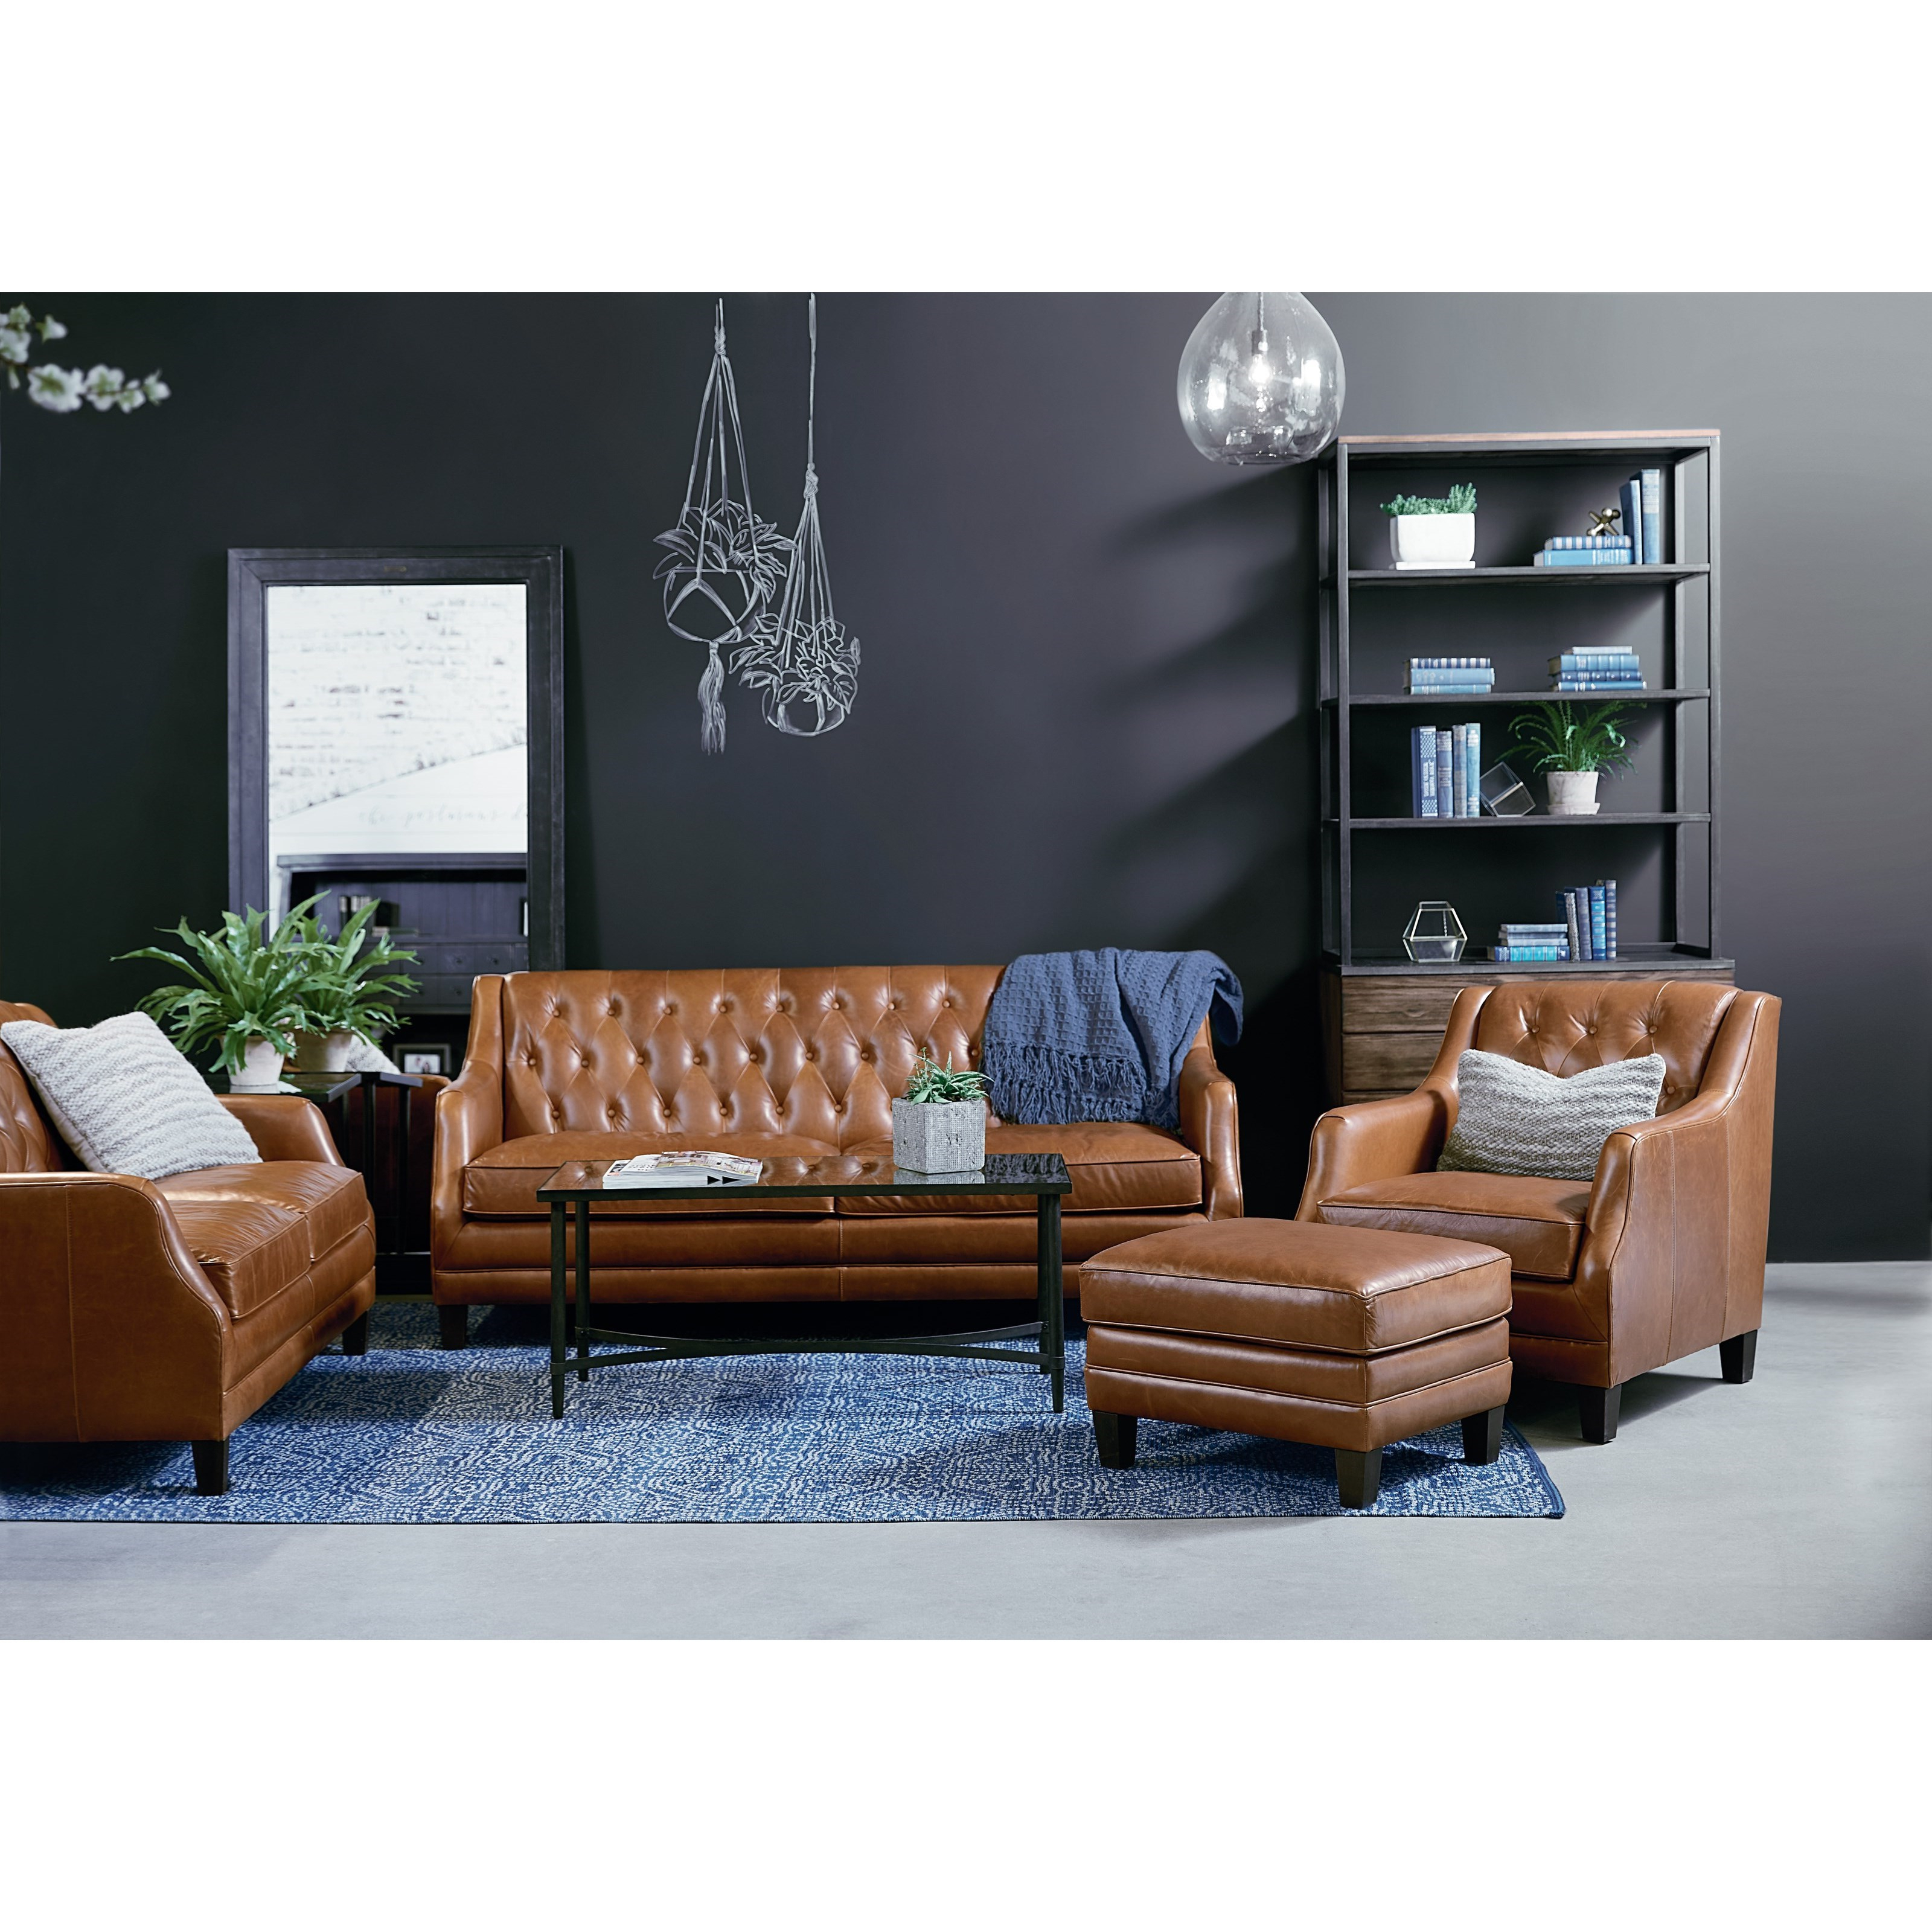 Baci Living Room Regarding Magnolia Home Homestead 4 Piece Sectionals By Joanna Gaines (View 17 of 20)